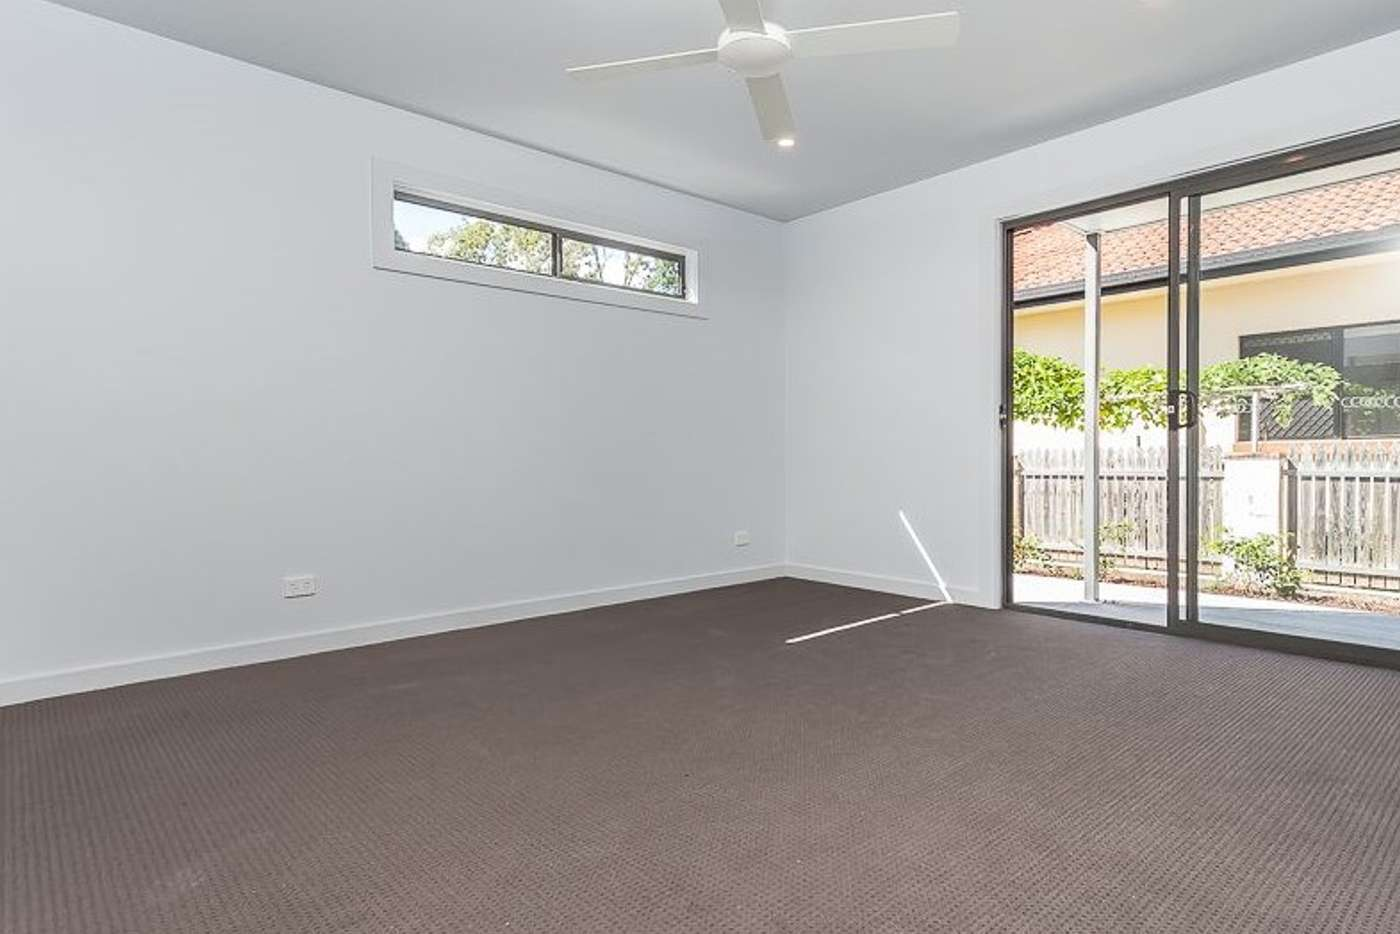 Sixth view of Homely townhouse listing, 1B Epacras St, Windsor QLD 4030